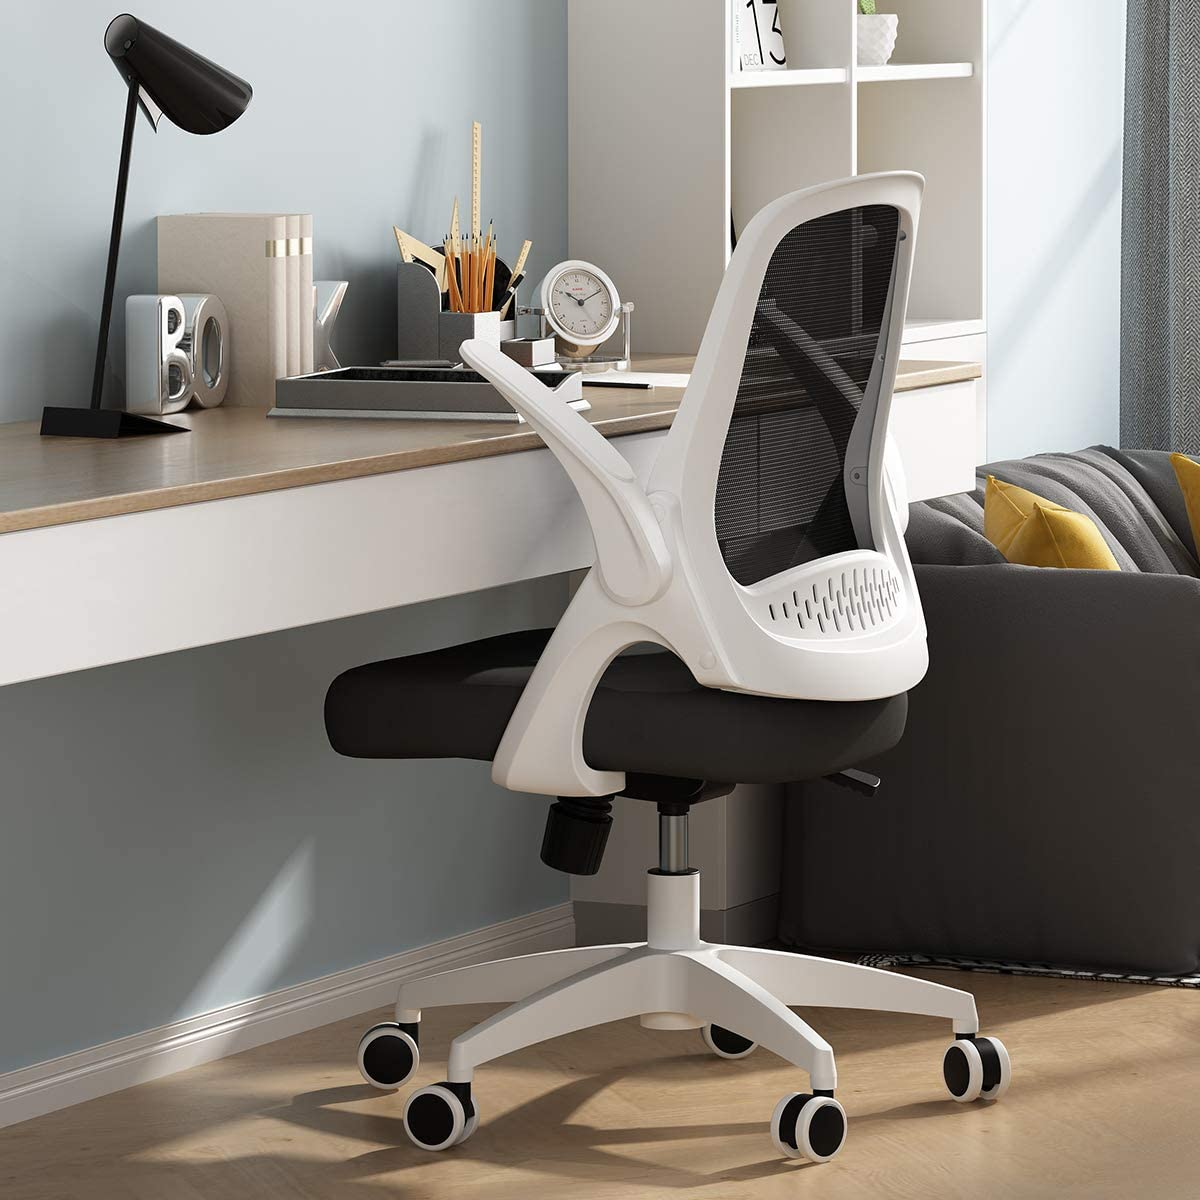 Amazon Com Hbada Office Task Desk Chair Swivel Home Comfort Chairs With Flip Up Arms And Adjustable Height White Kitchen Dining